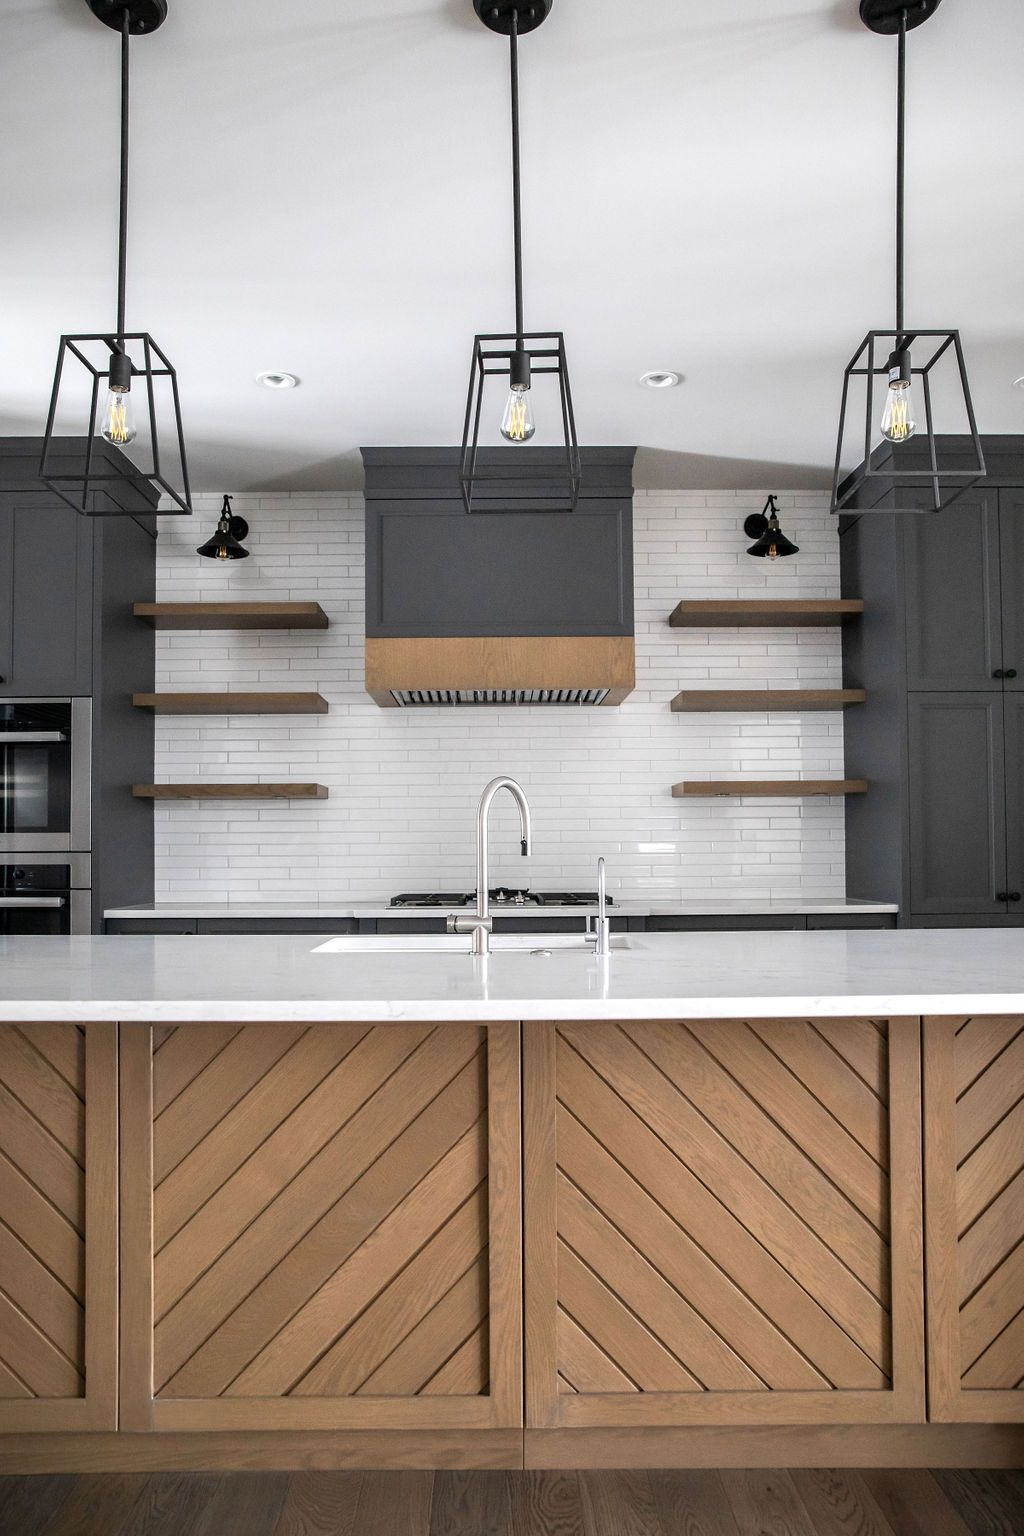 Chevron Island with Black Cabinets